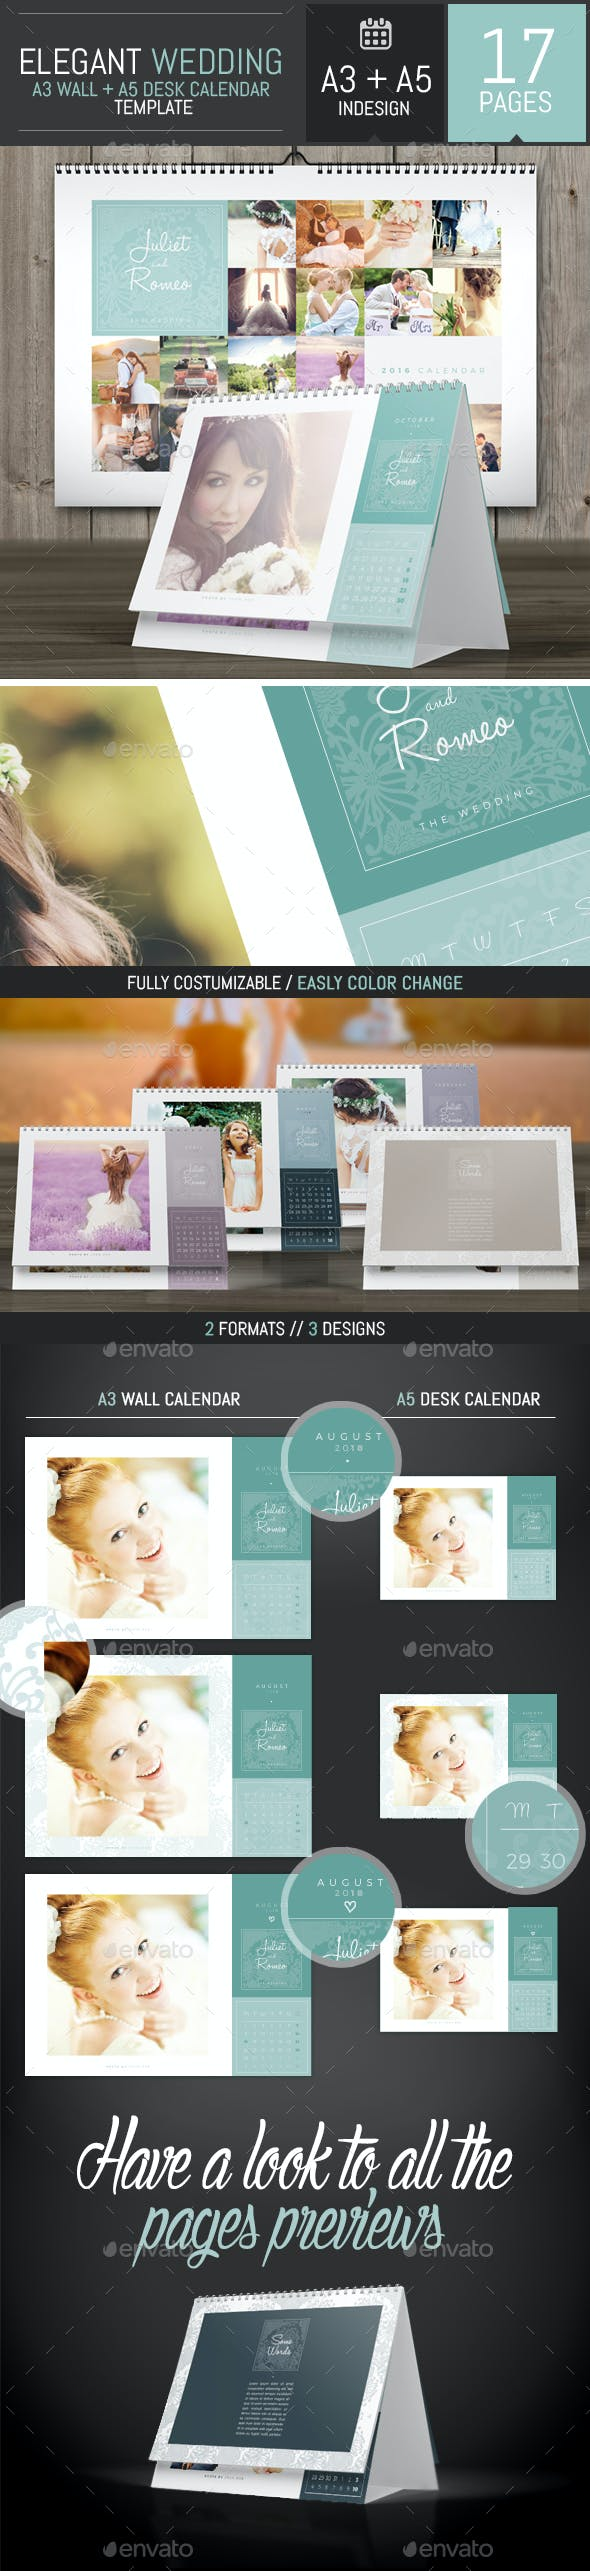 wedding a3 wall a5 desk 2018 calendar template calendars stationery